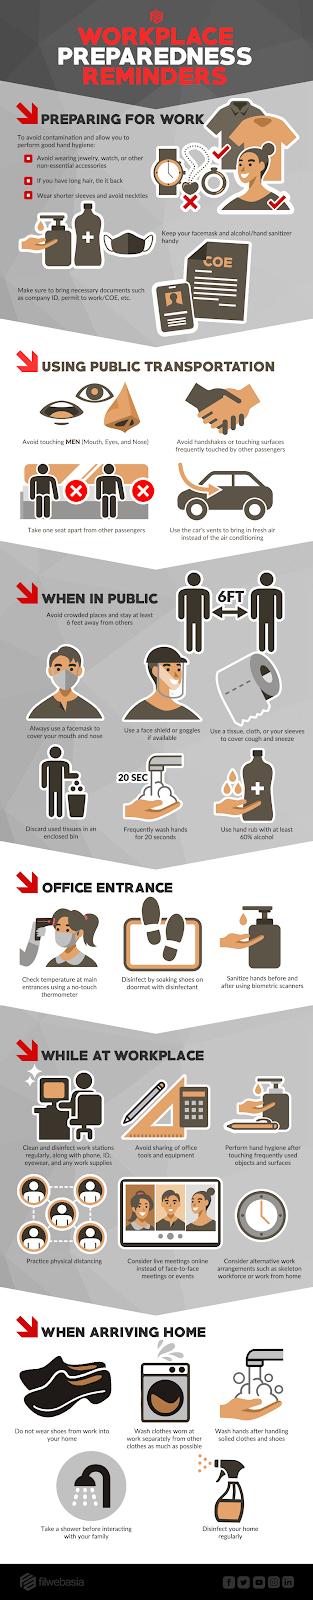 Workplace preparedness reminders infographic to prevent COVID-19 by FilWeb Asia Inc.